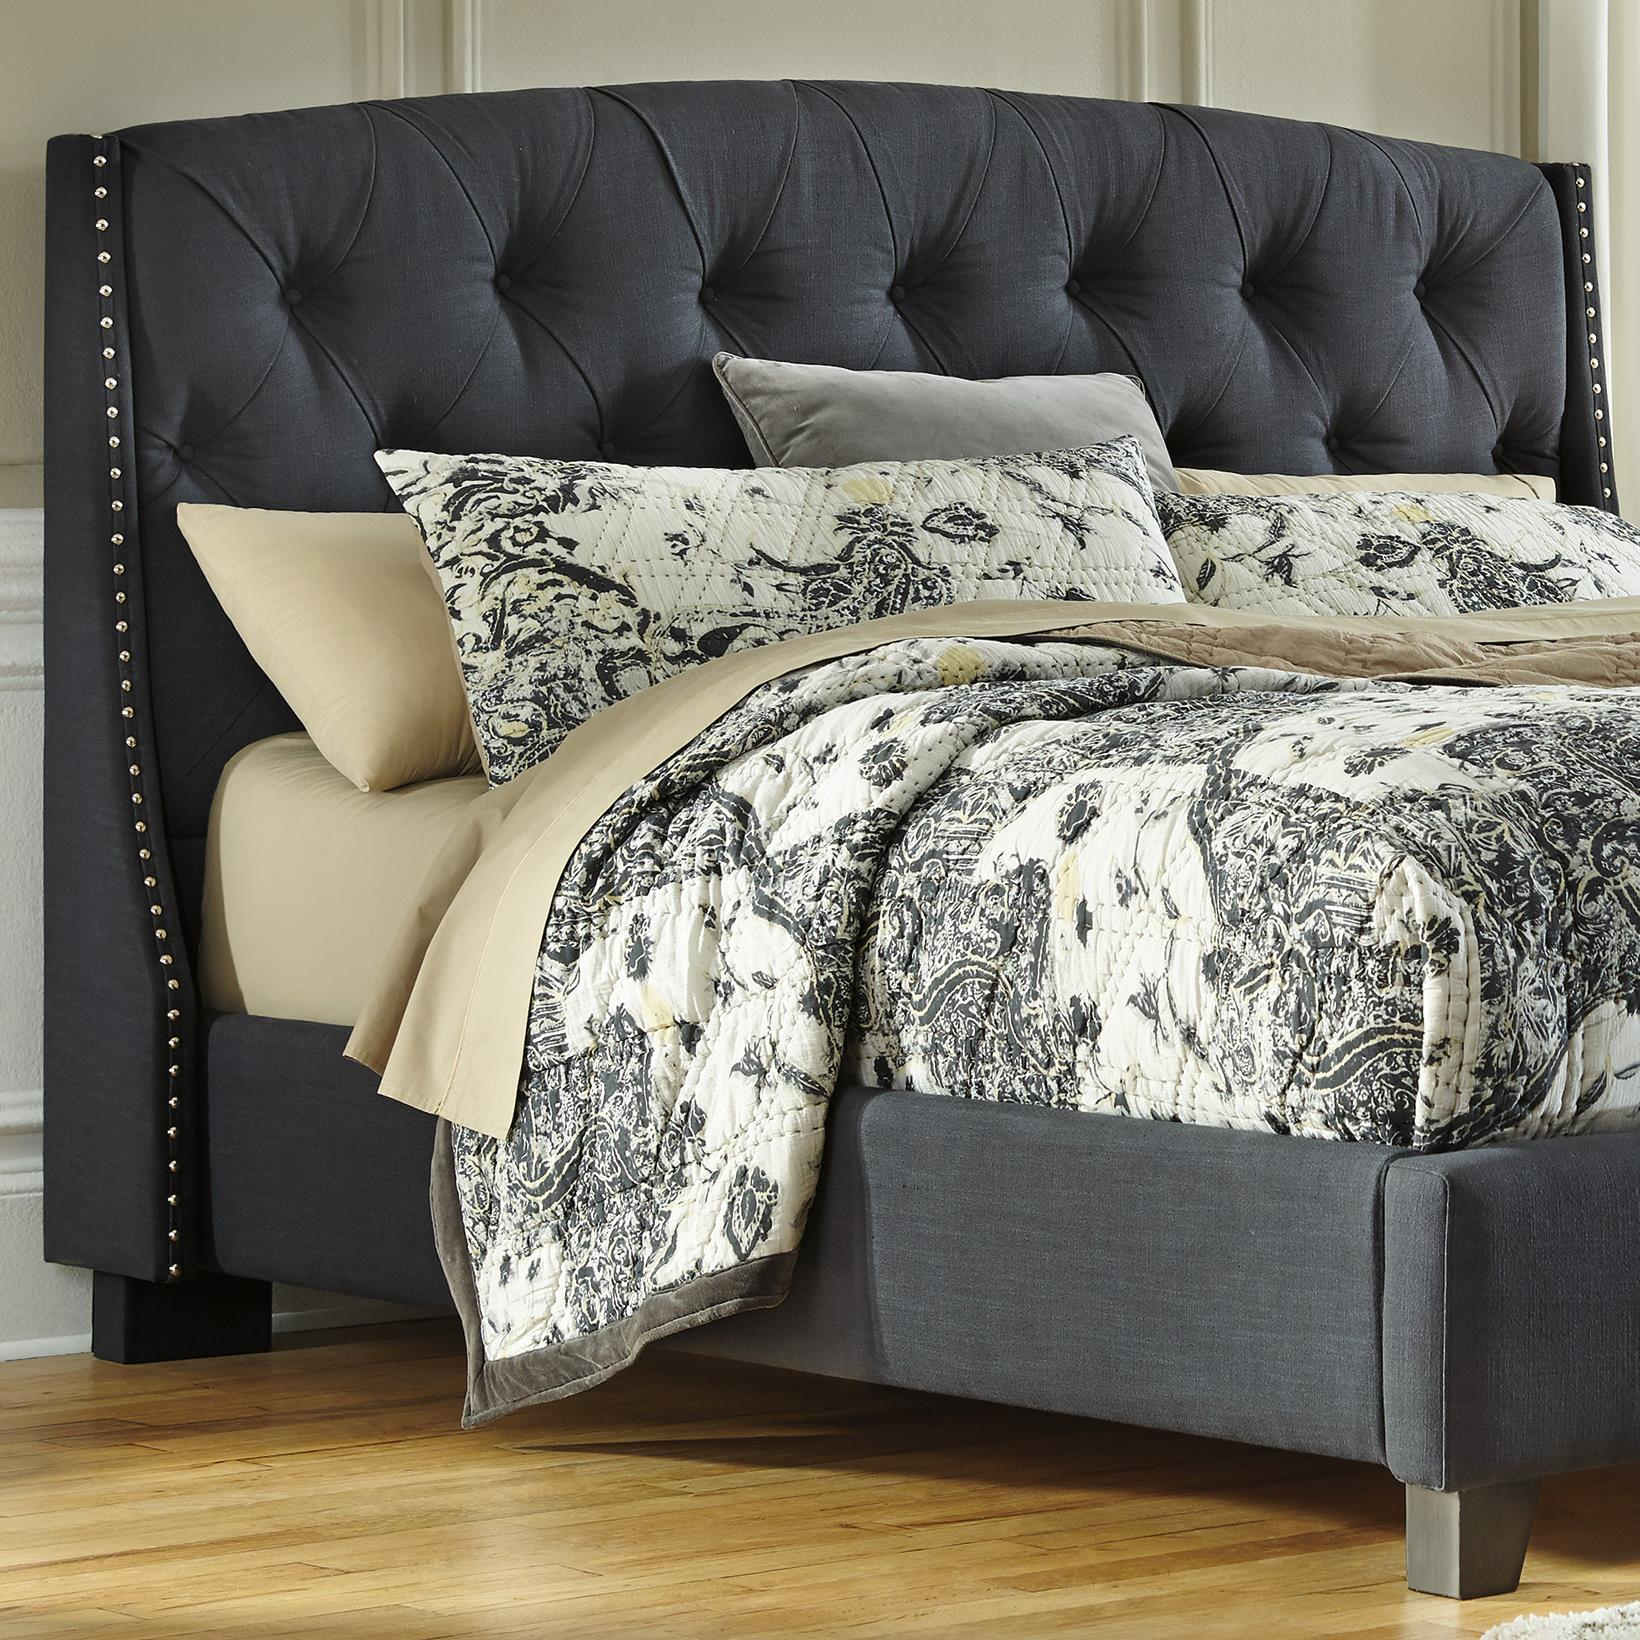 king upholstered headboard in dark gray with tufting and nailhead trim